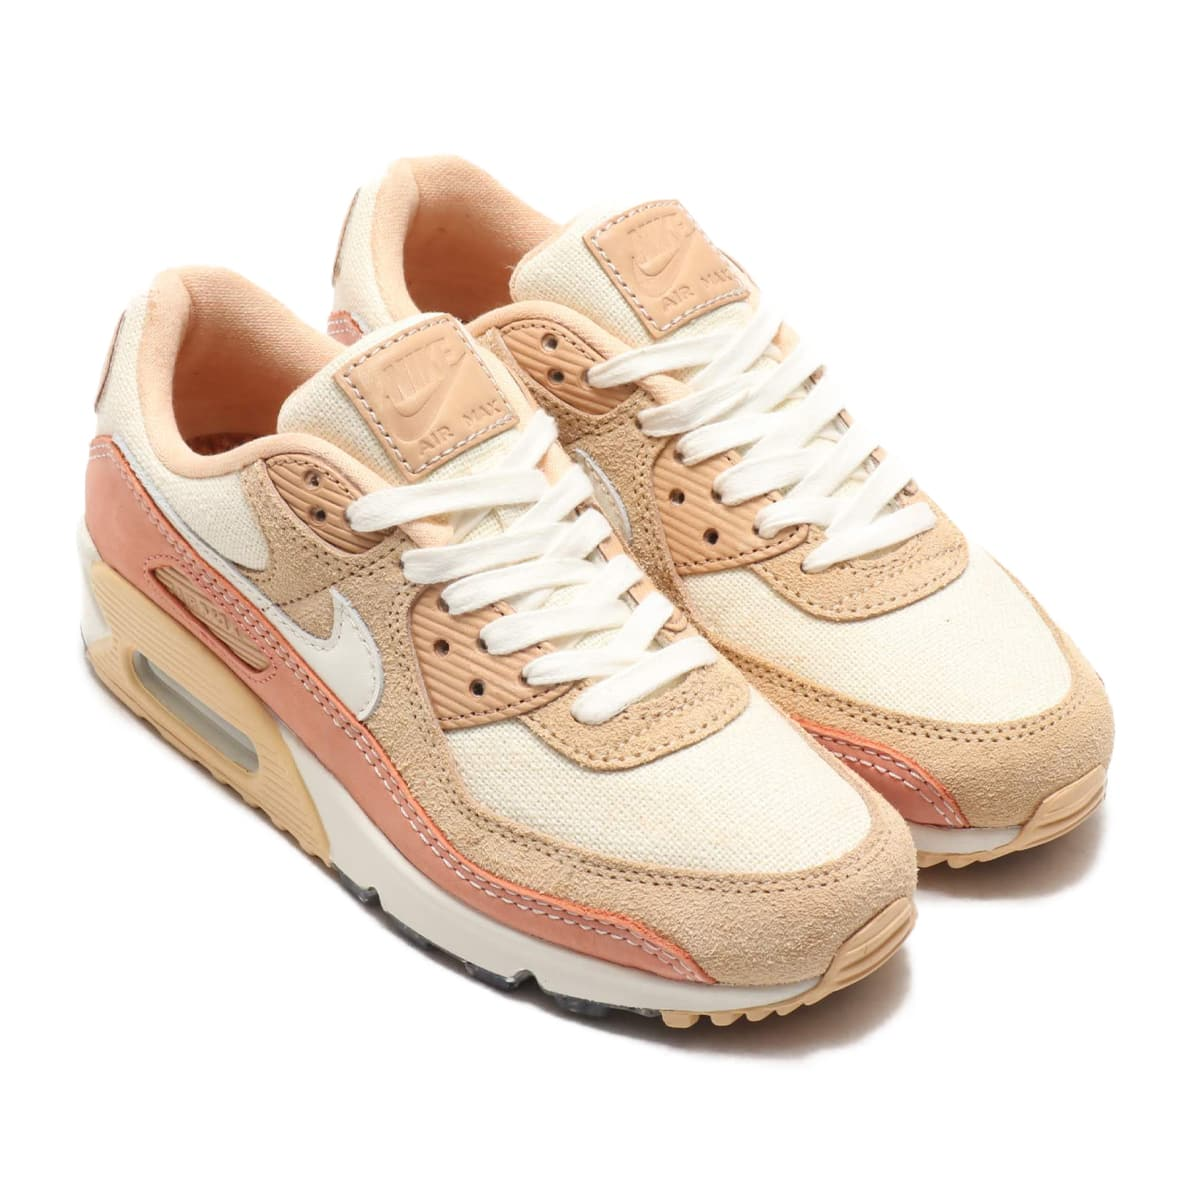 NIKE W AIR MAX 90 WHITE ONYX/SAIL-TERRA BLUSH-VACHETTA TAN 20SU-S_photo_large